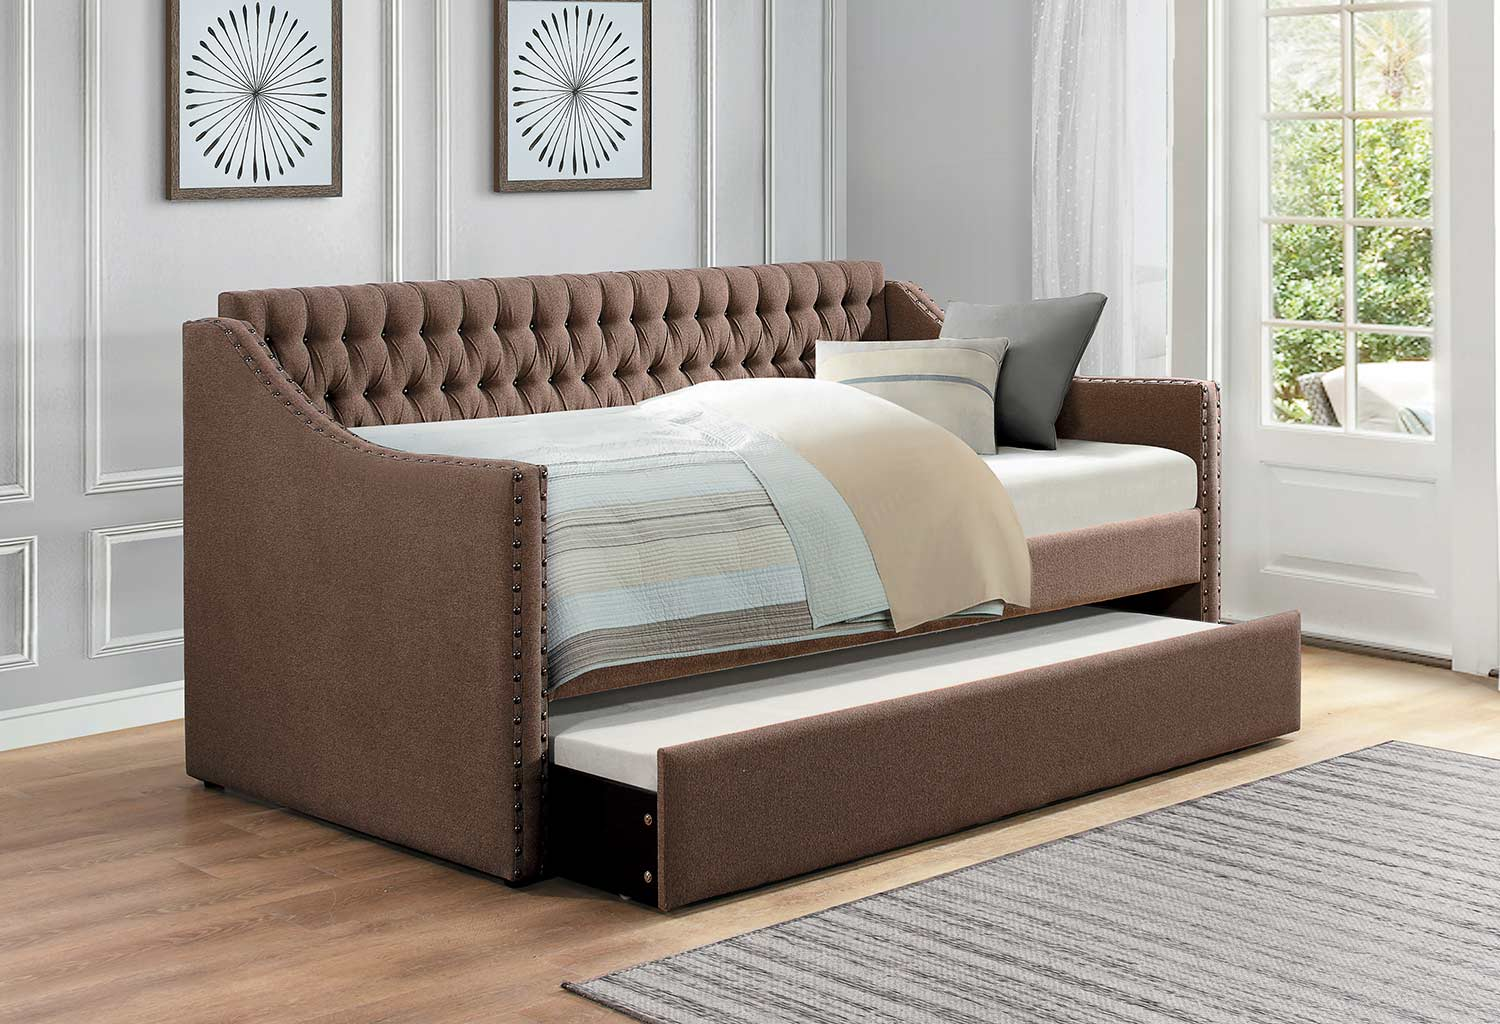 Homelegance Tulney Button Tufted Upholstered Daybed with Trundle - - Brown